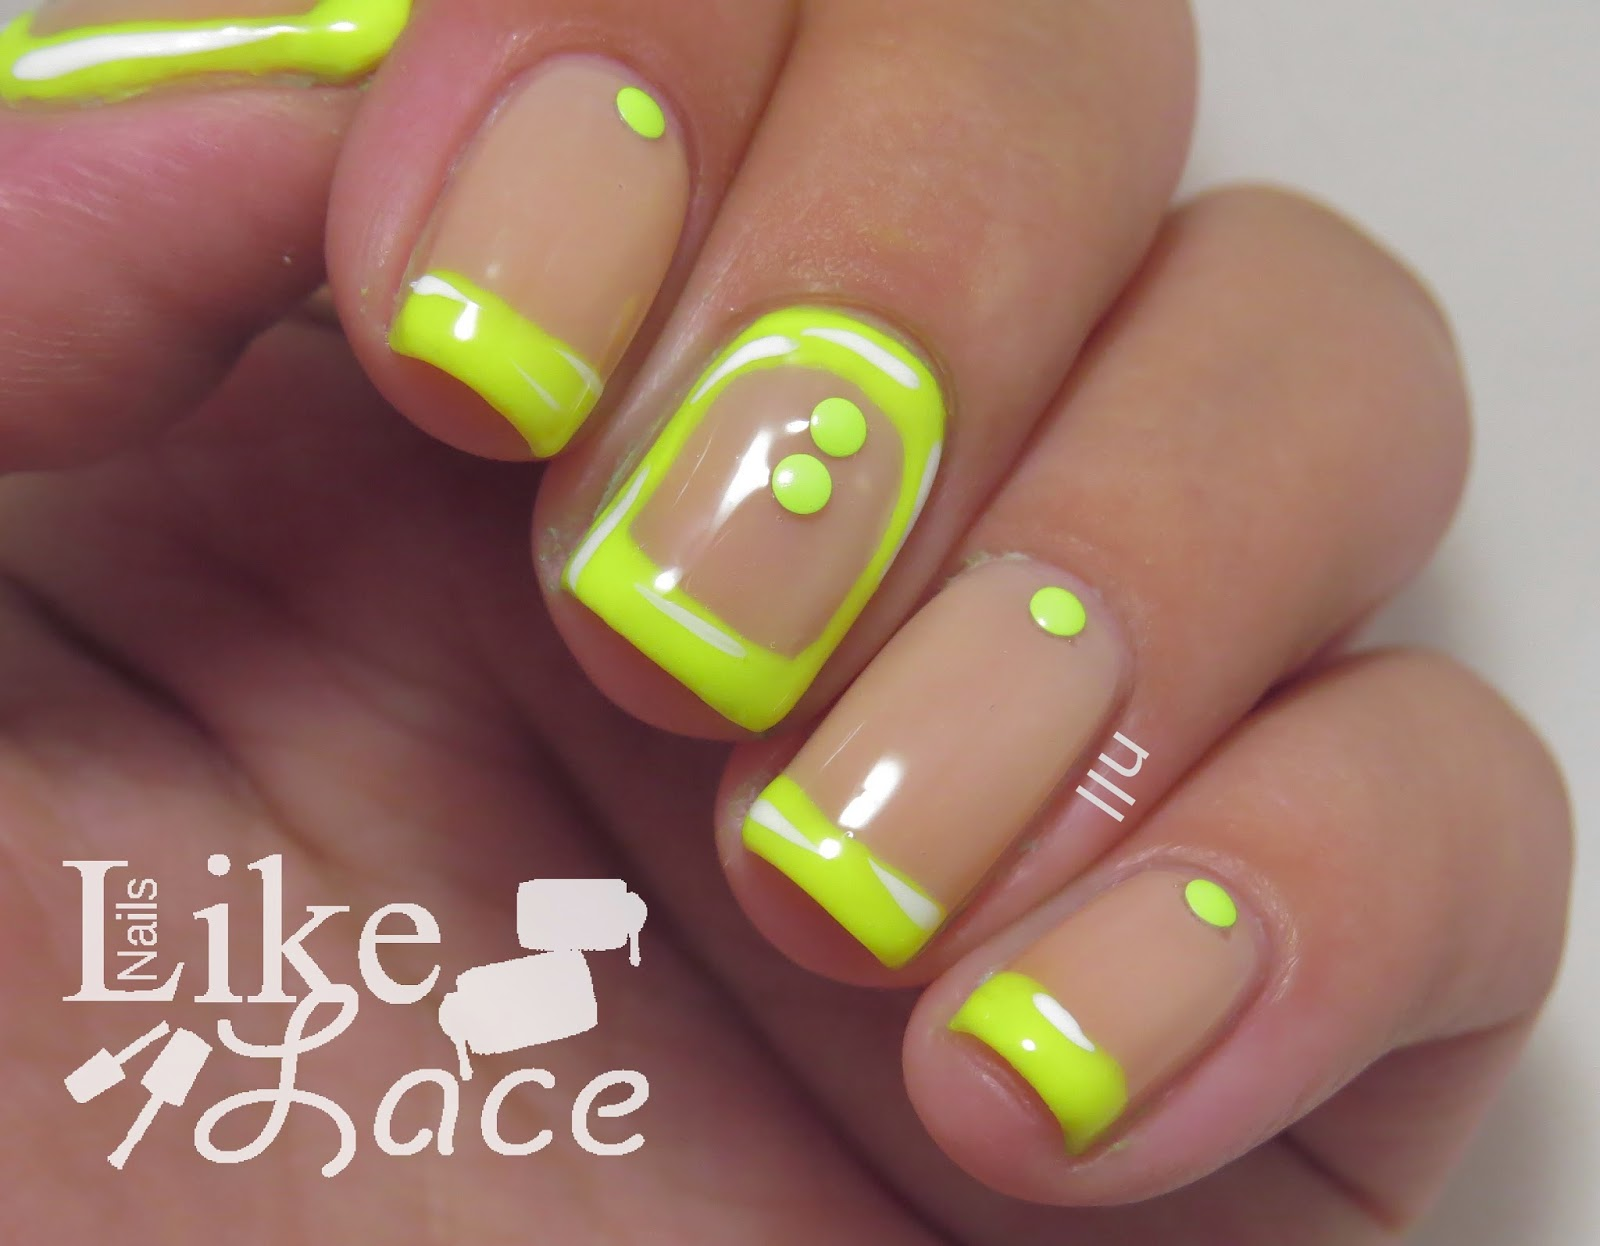 NailsLikeLace: Neon & Nude Nails - Tips and Borders